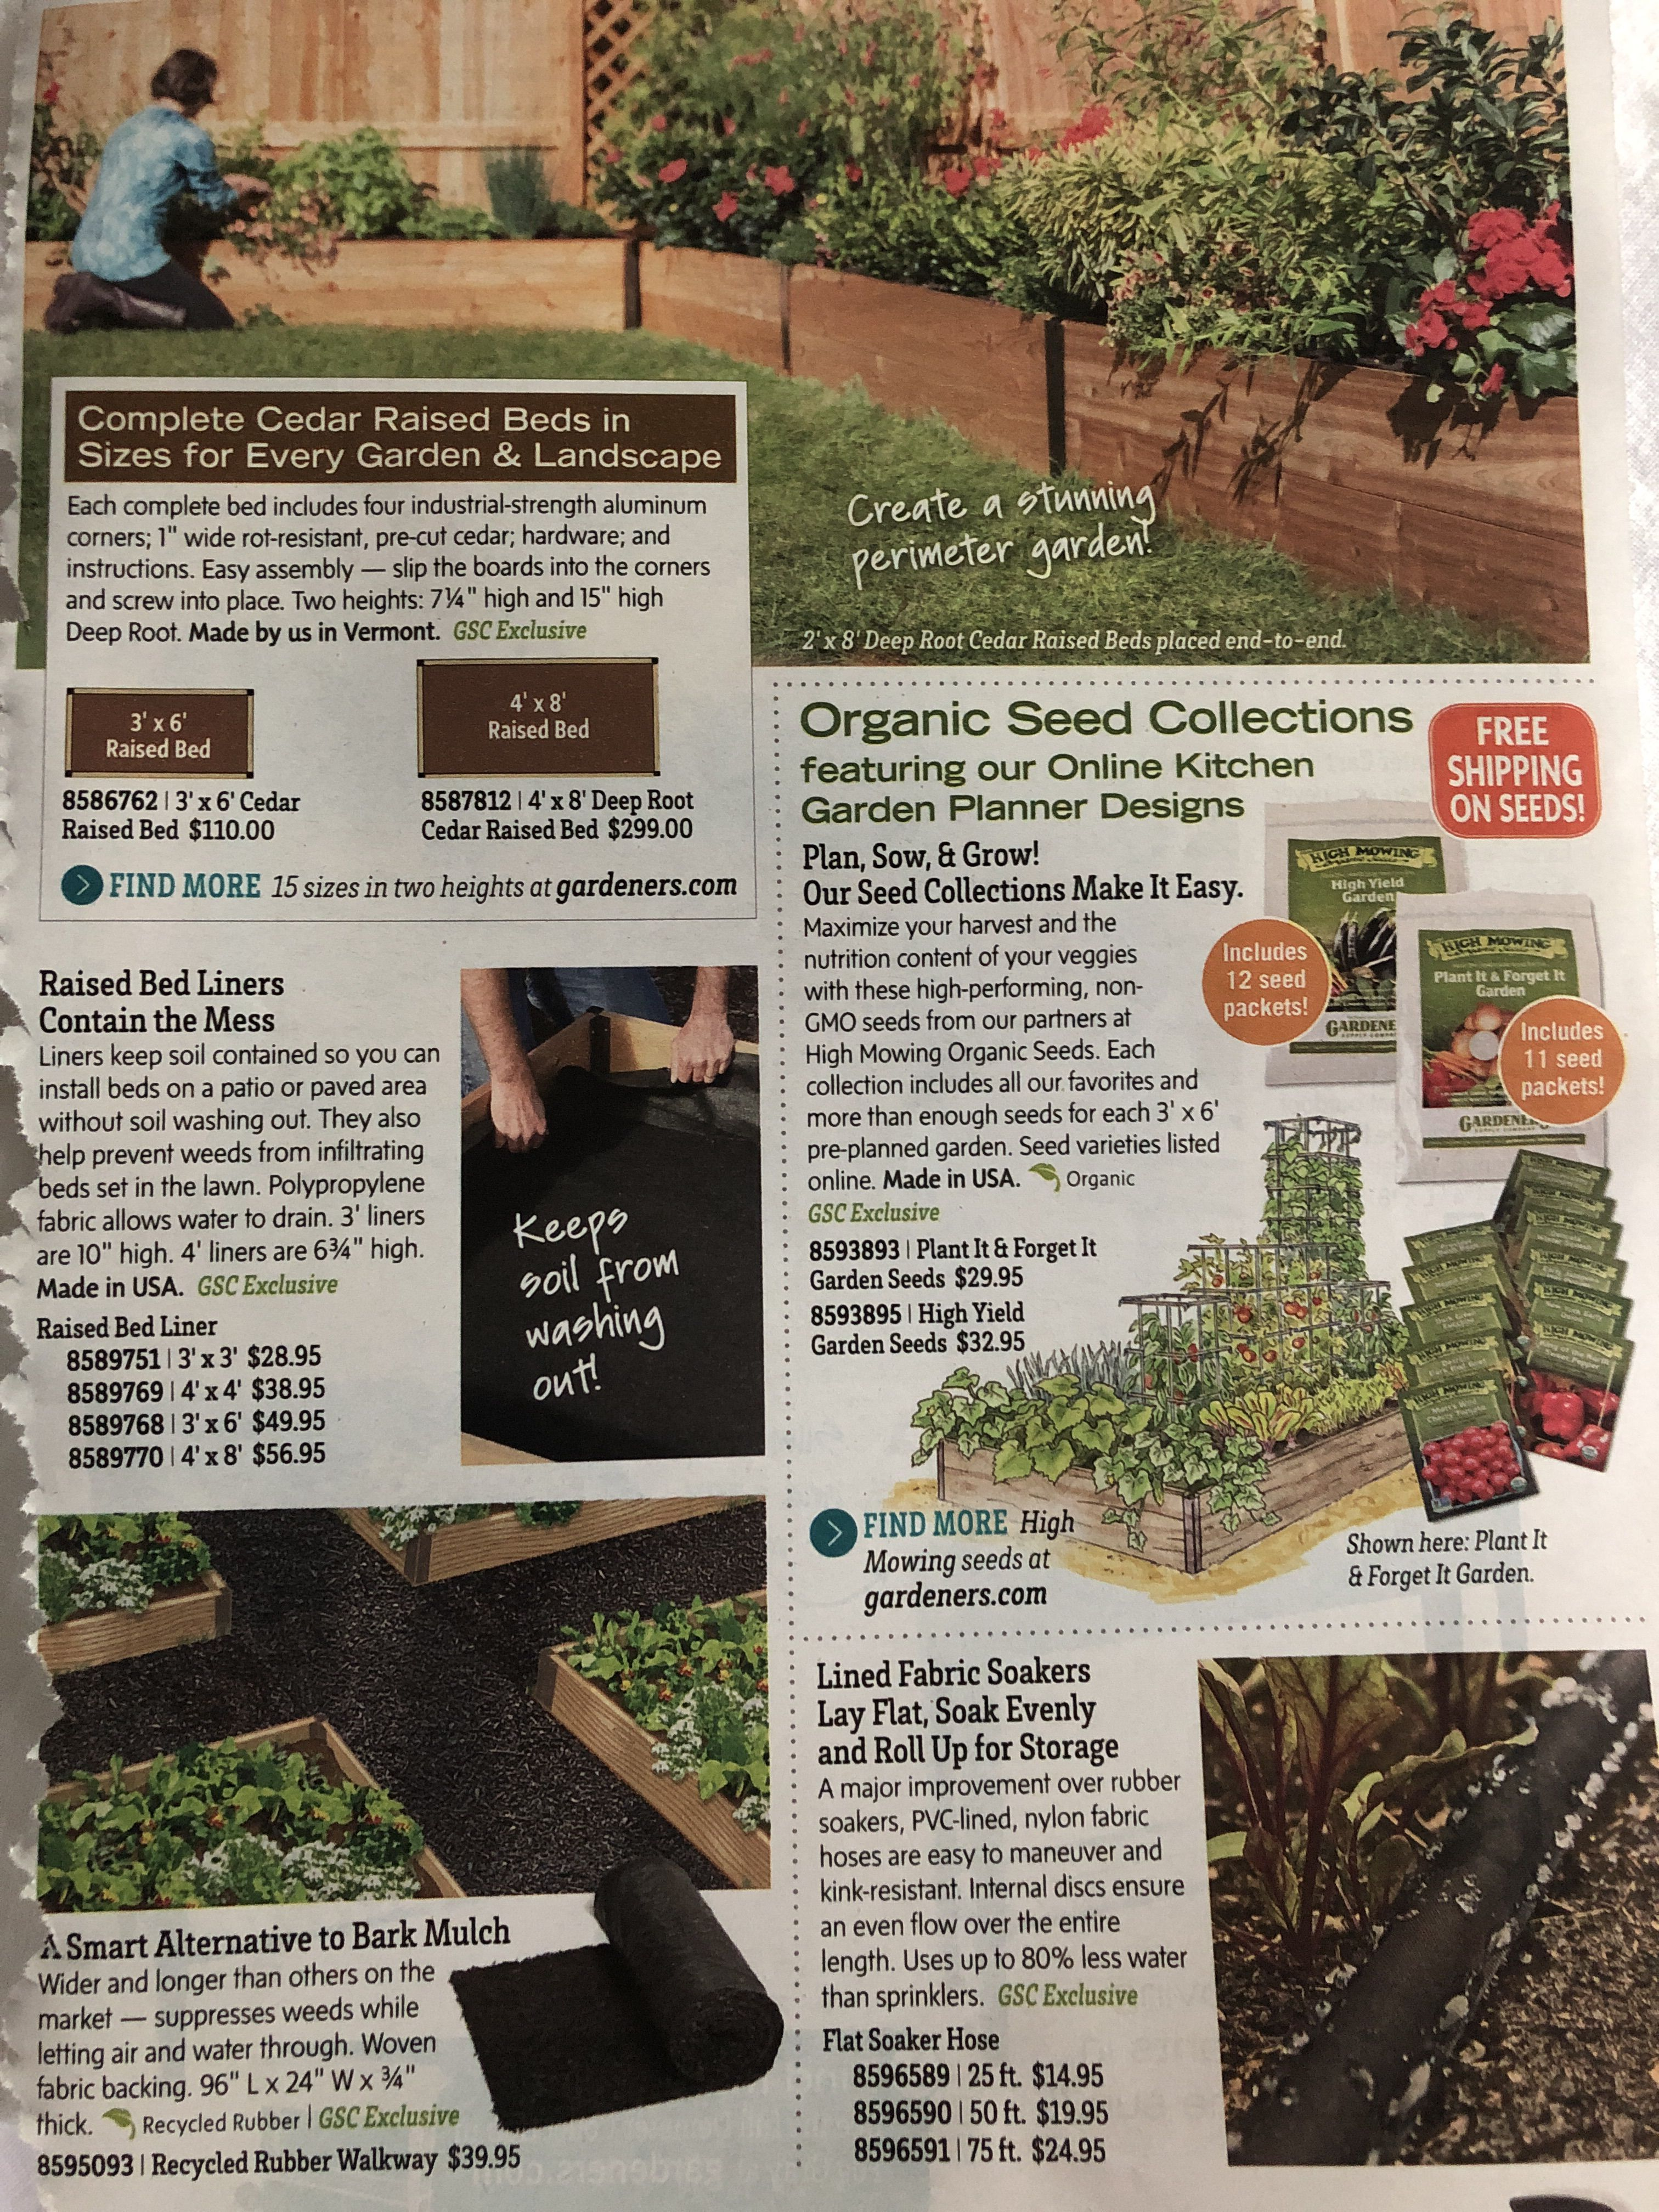 Bed Liner And Rubber Walkway Garden Landscaping Organic Seeds